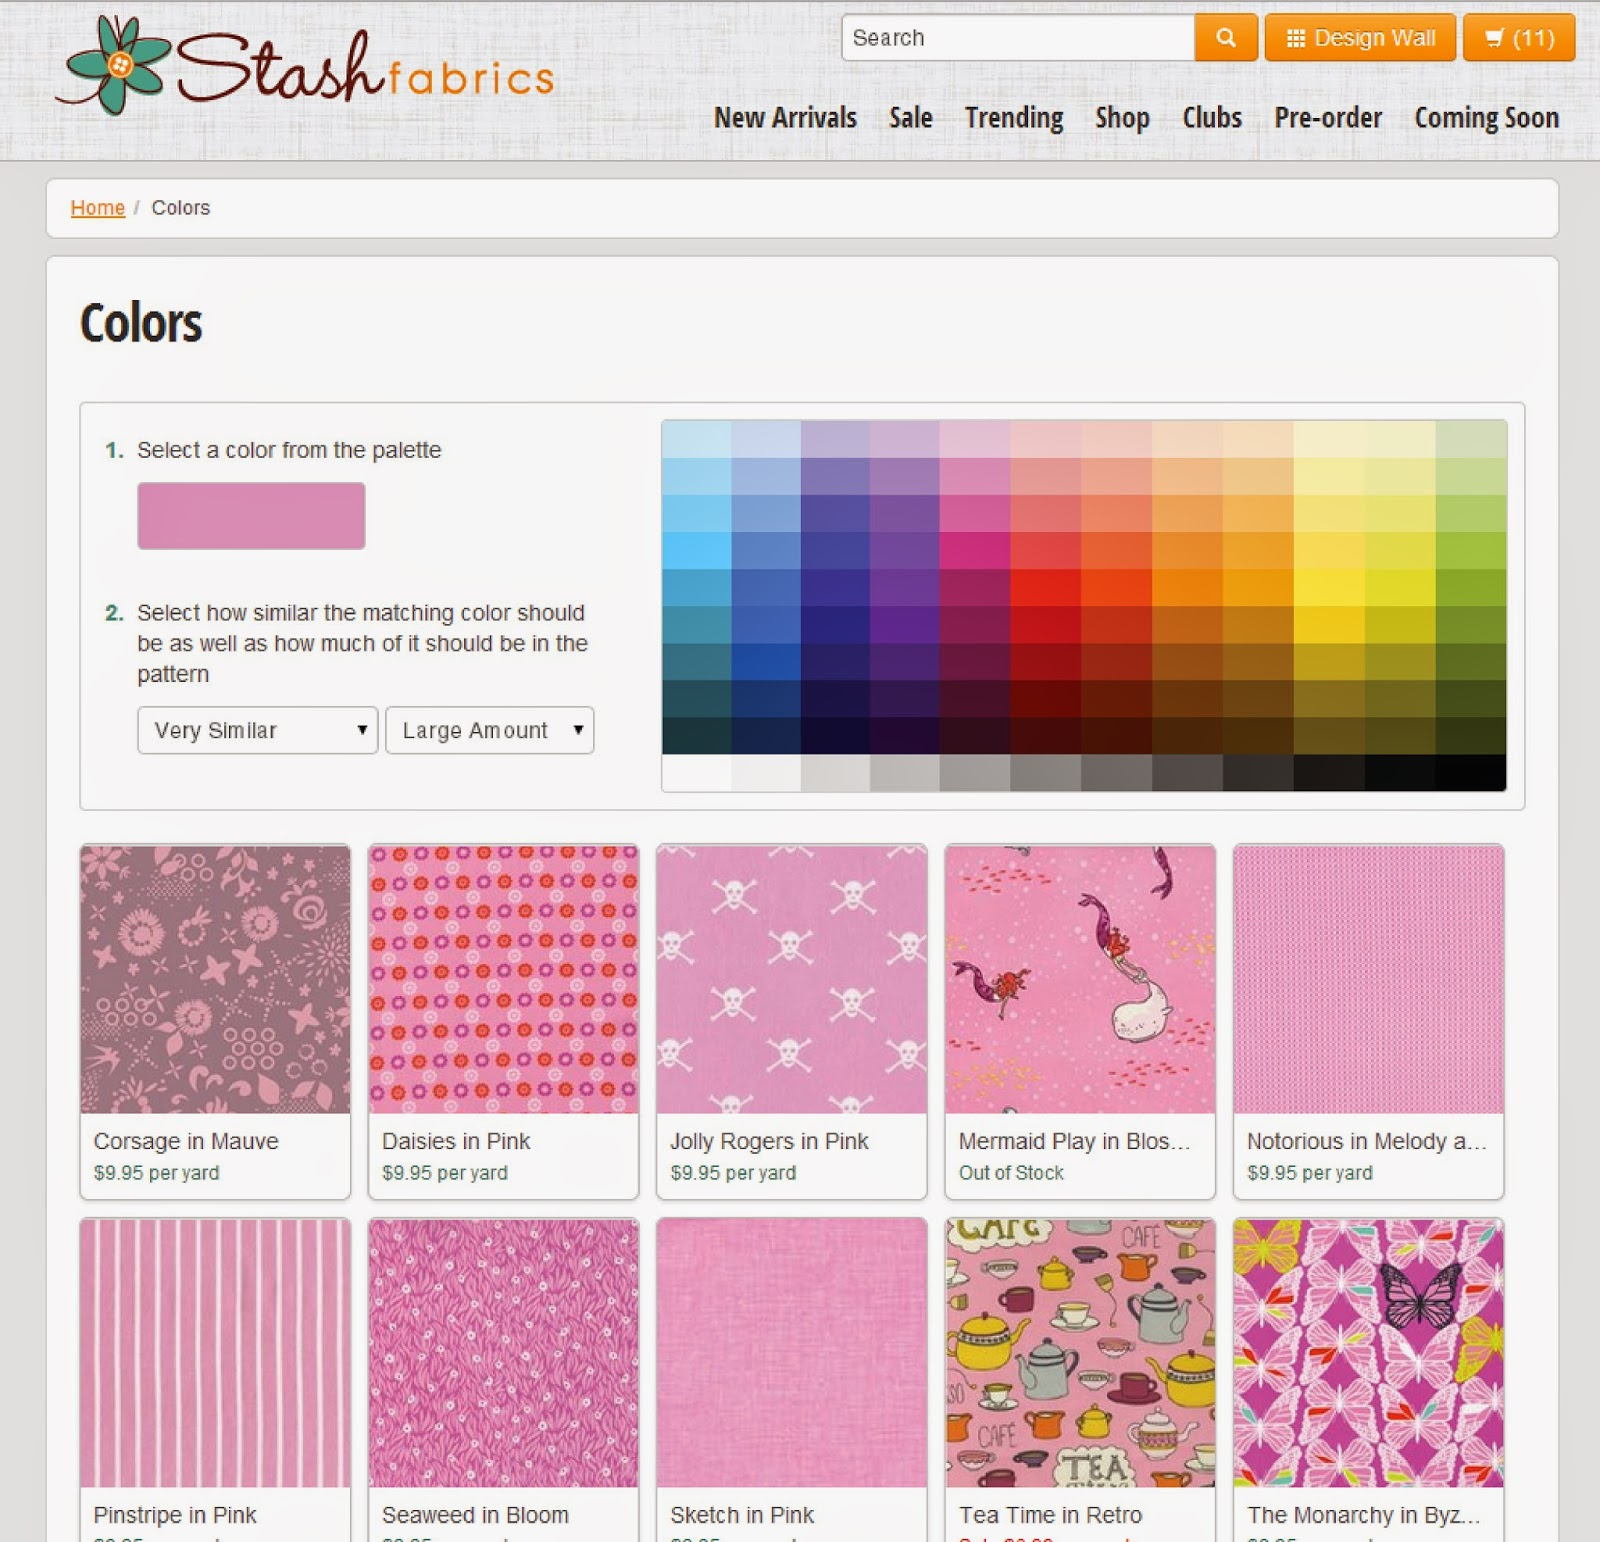 Bijou Lovely: Giveaway from Stash Fabrics!